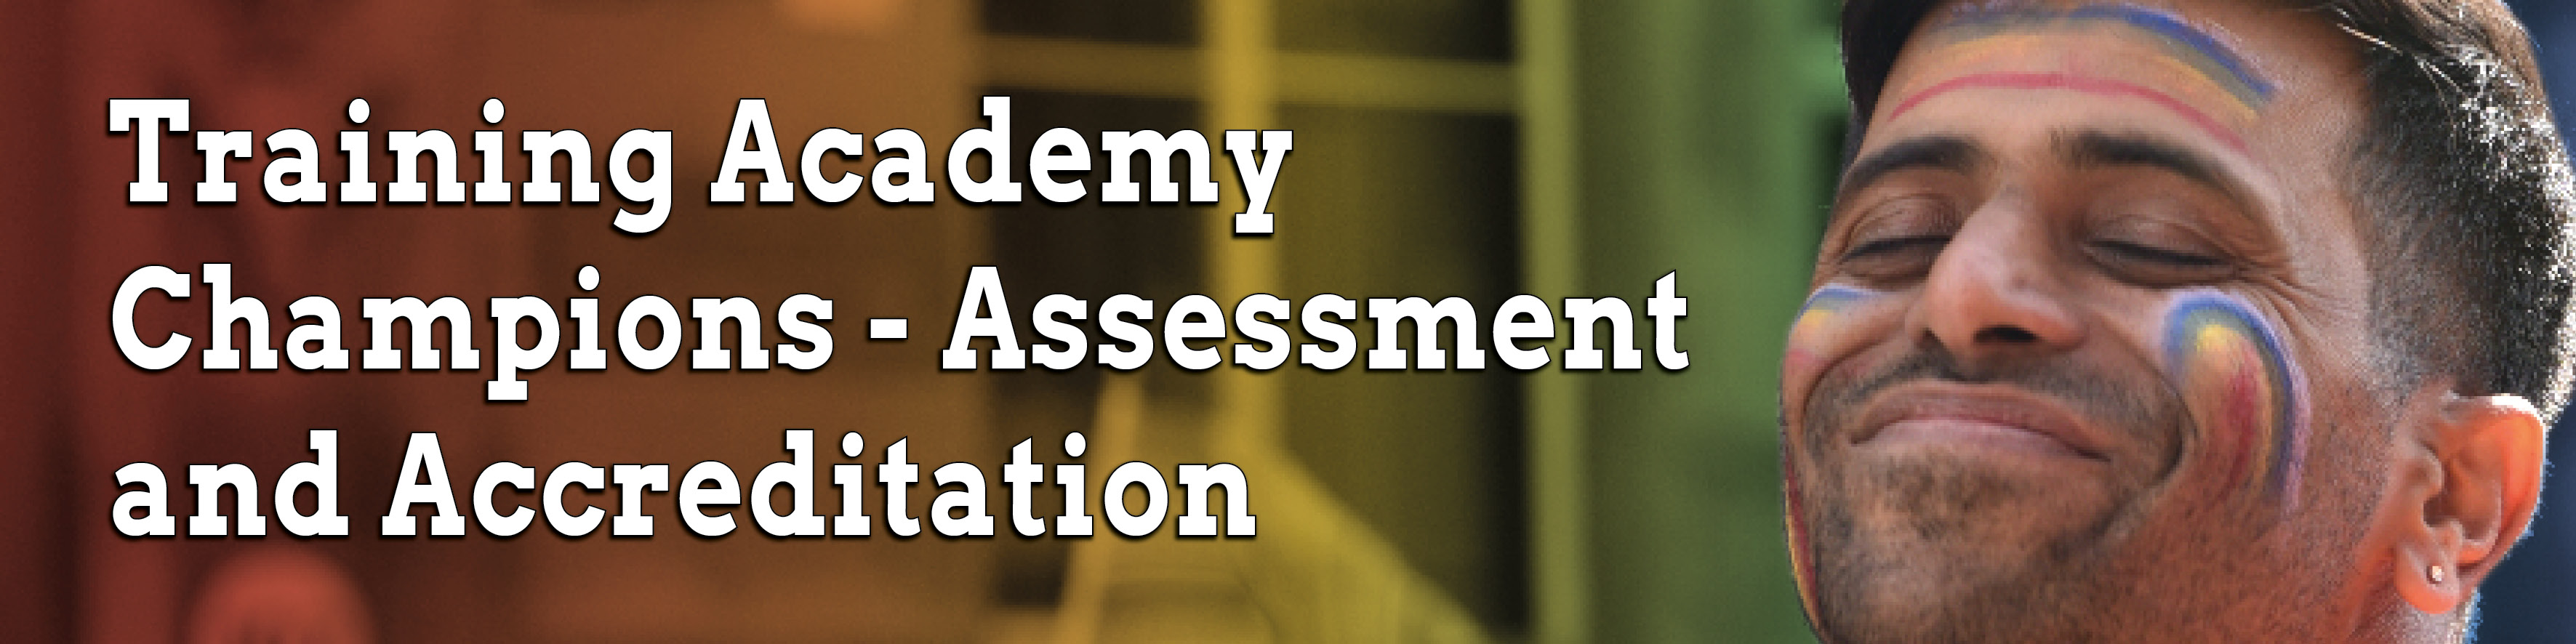 Training Academy Champions - Assessment and Accreditation